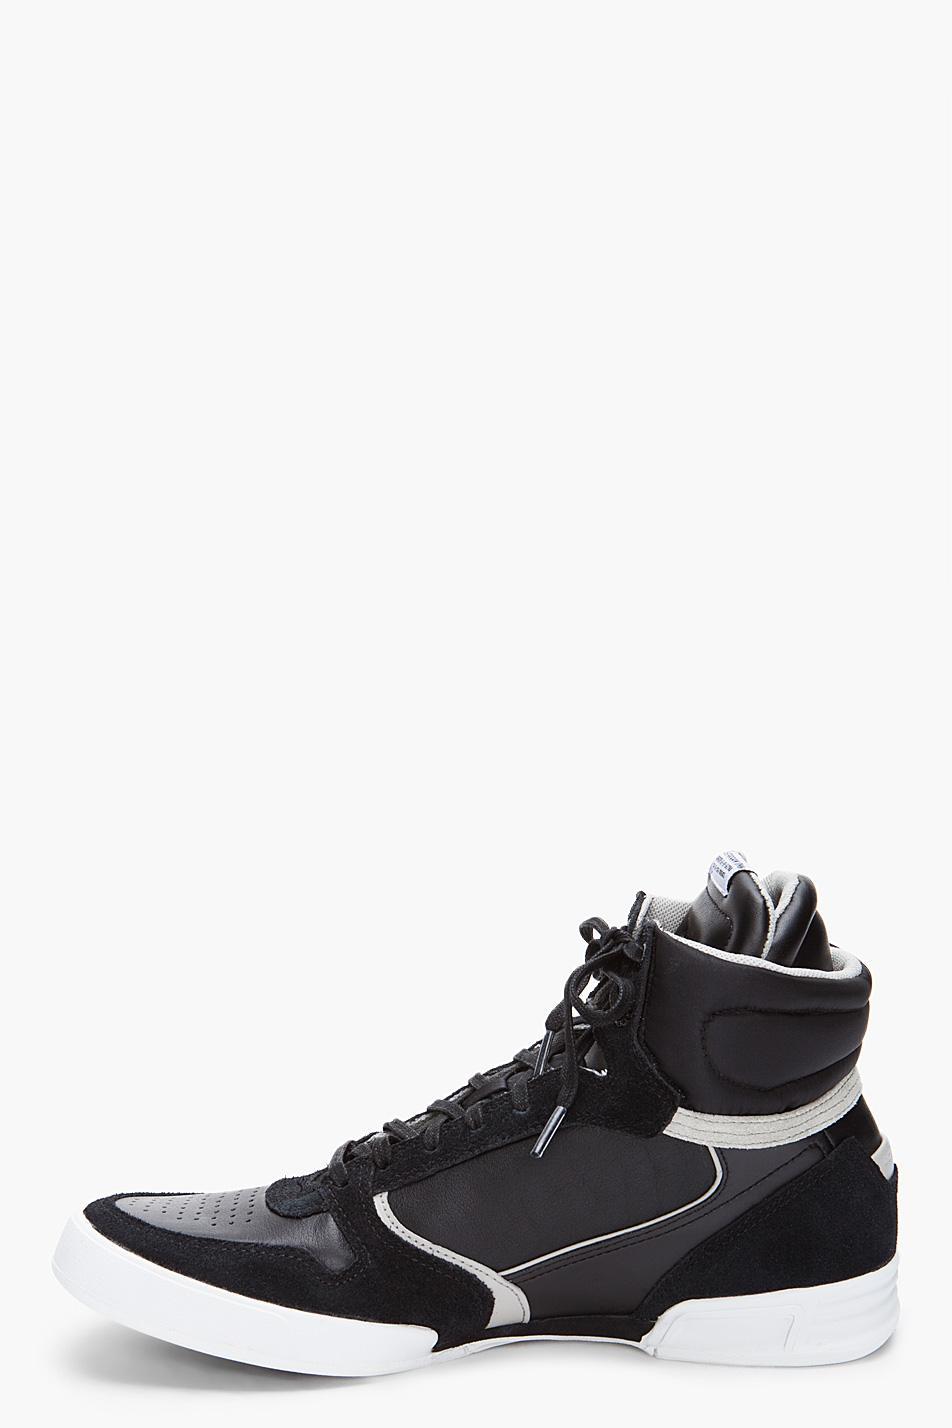 g star raw yard skirmish hi top sneaker in black in black for men lyst. Black Bedroom Furniture Sets. Home Design Ideas